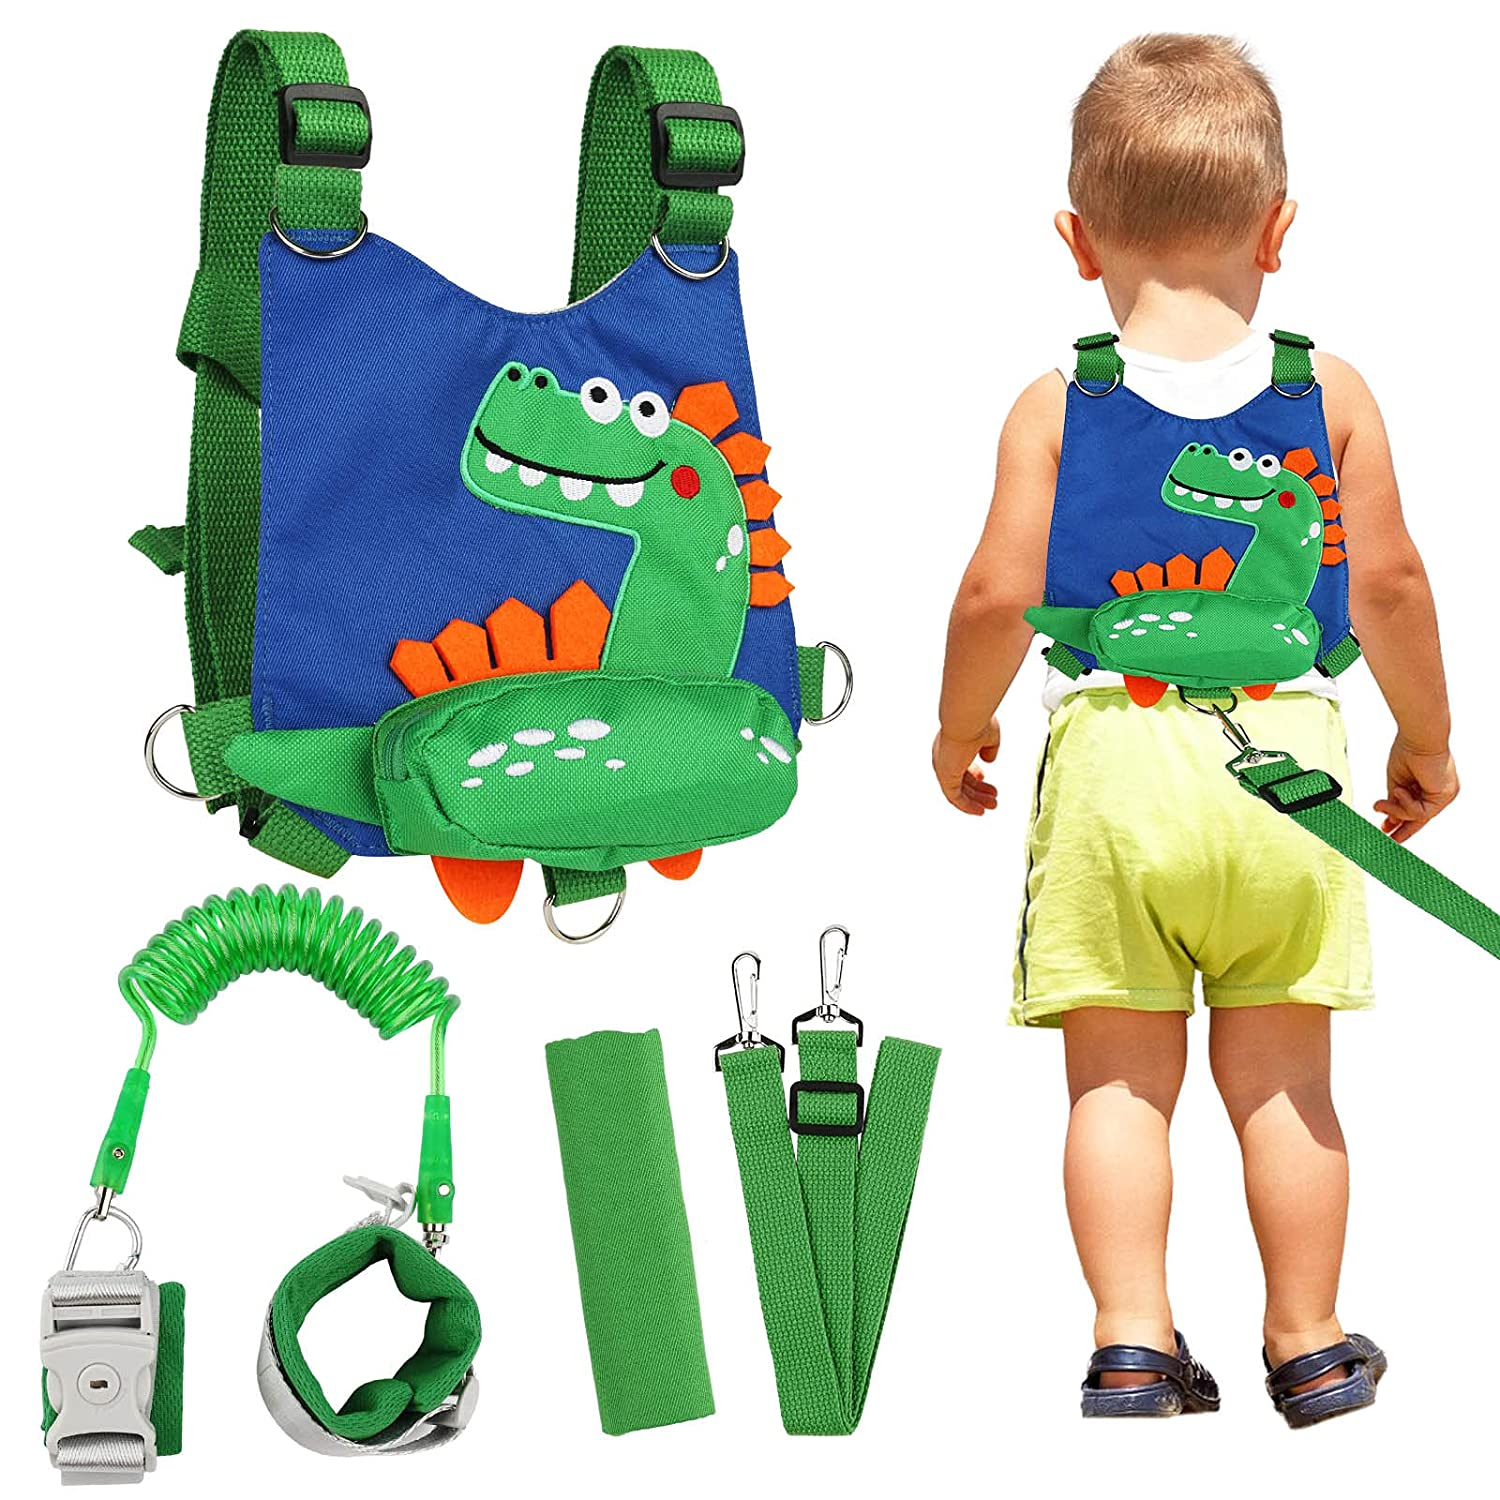 Toddler Backpack Leash Dinosaur 4-in-1 Anti Lost Wrist Link with Lock Harness Leashes for Kids, Zhiwei Child Safety Leash Wristband Walking Assistant Strap Belt for Baby Boys Girls (Blue)